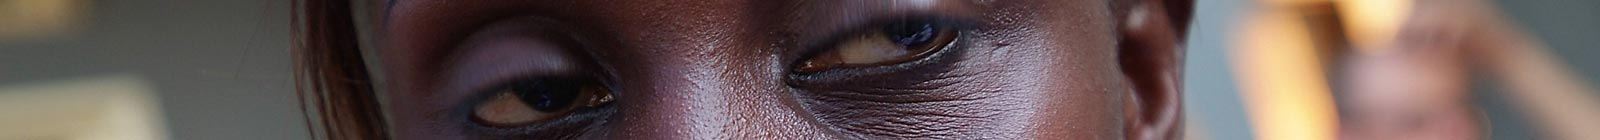 Eyes of Fantakounda, Conakry, Guinea.